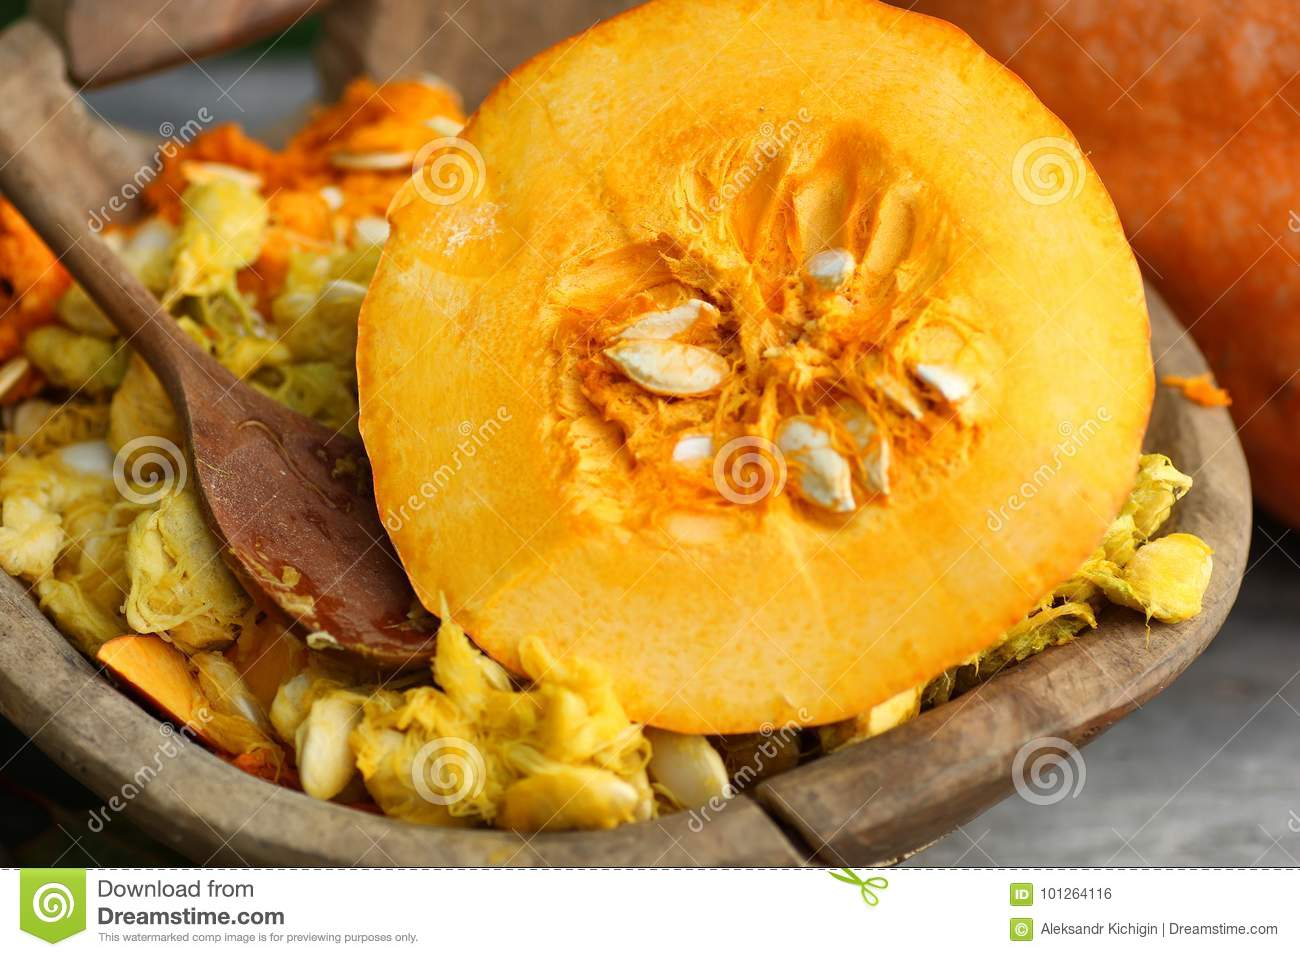 cut pumpkins outdoor stock photo. image of celebration - 101264116